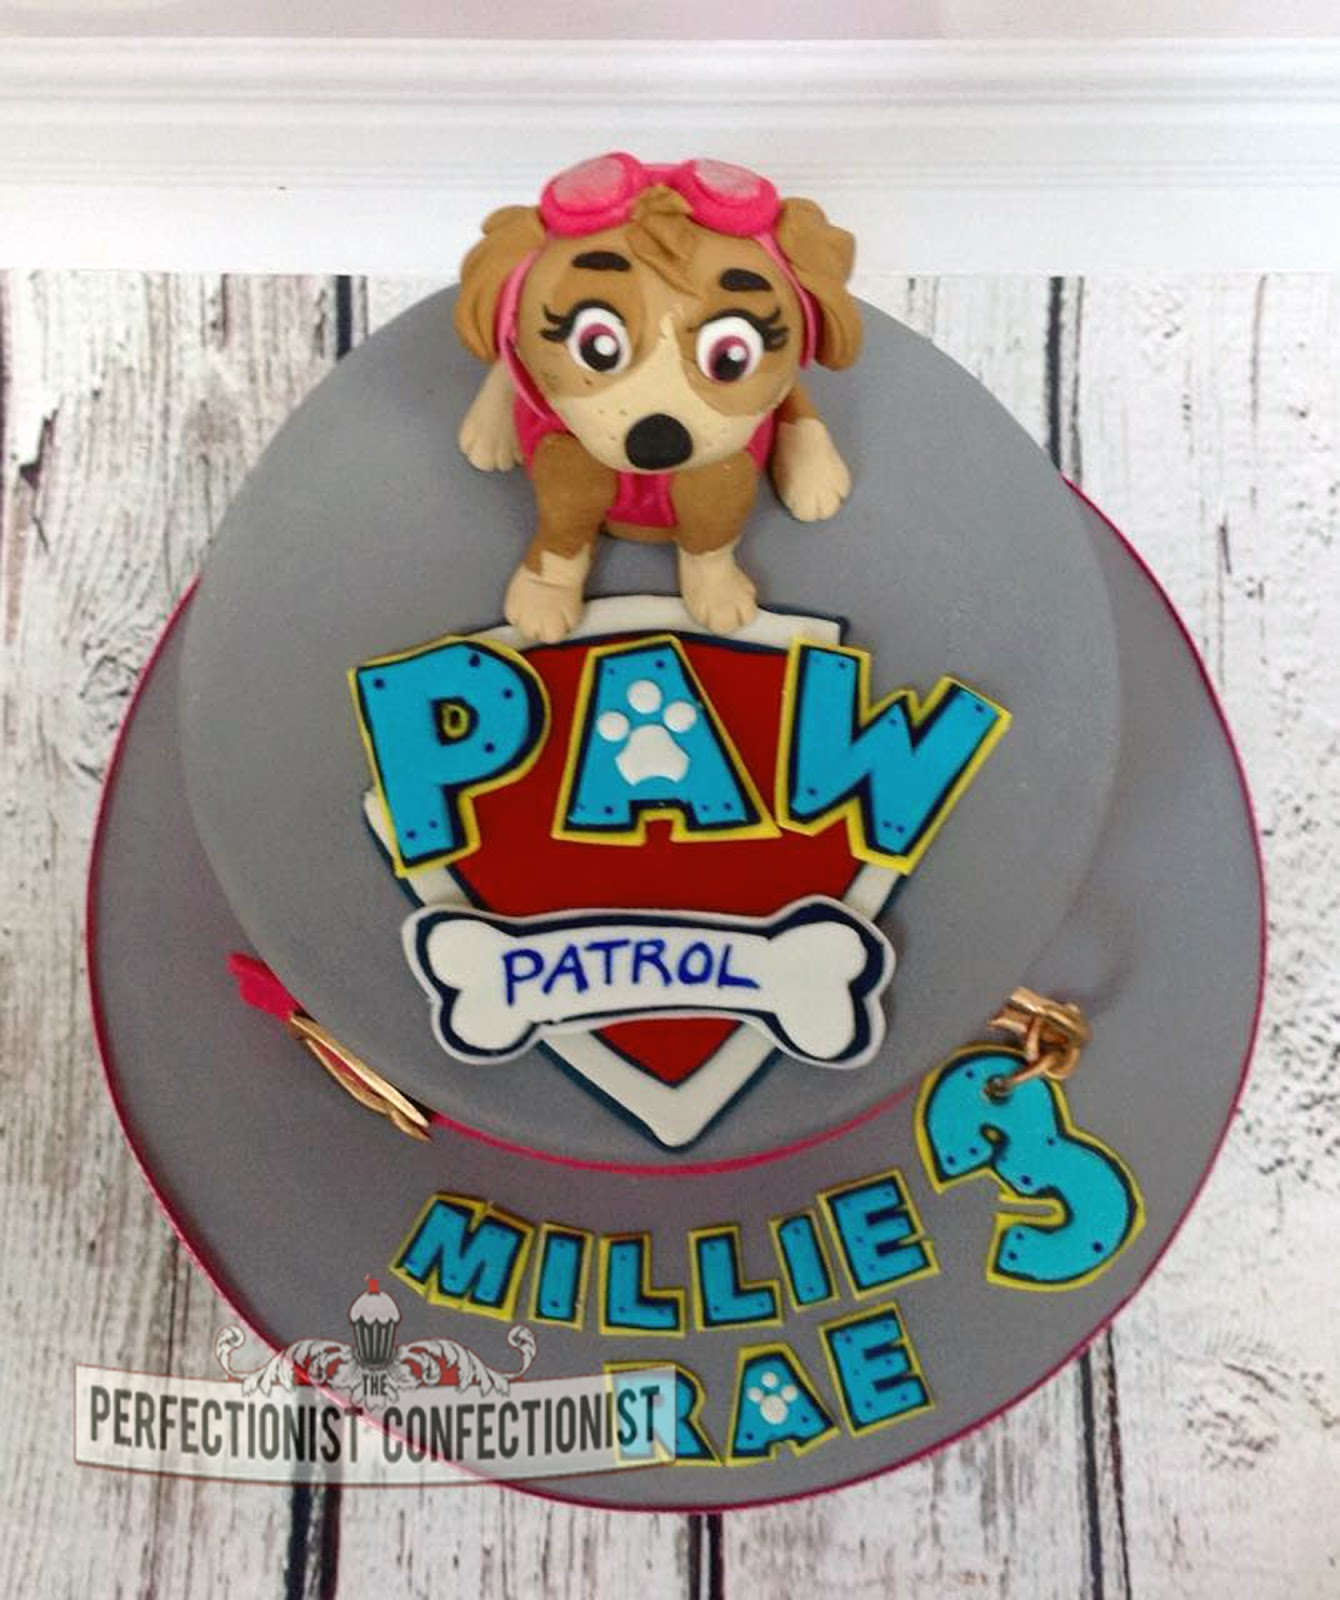 The Perfectionist Confectionist Millie Rae Paw Patrol Birthday Cake